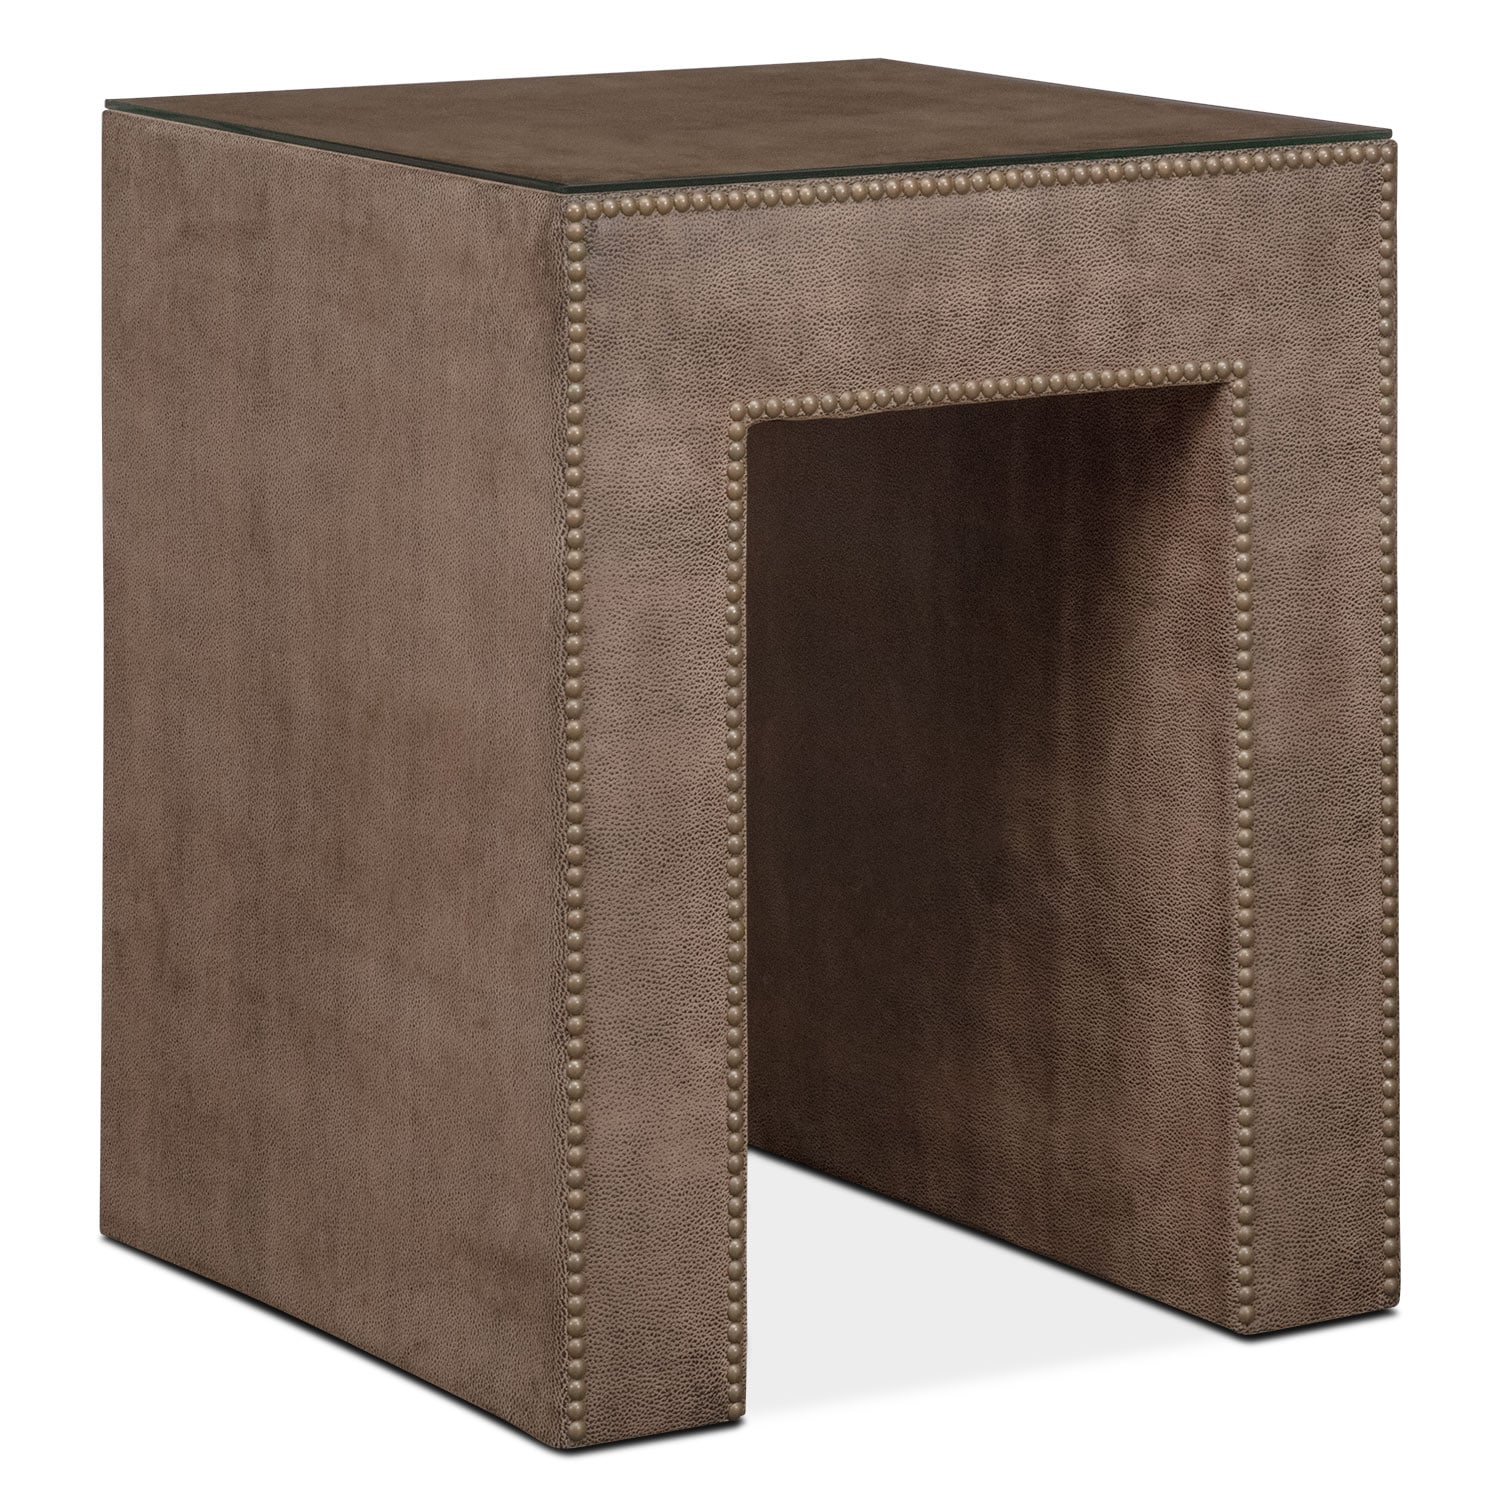 Nyla Nightstand - Brown